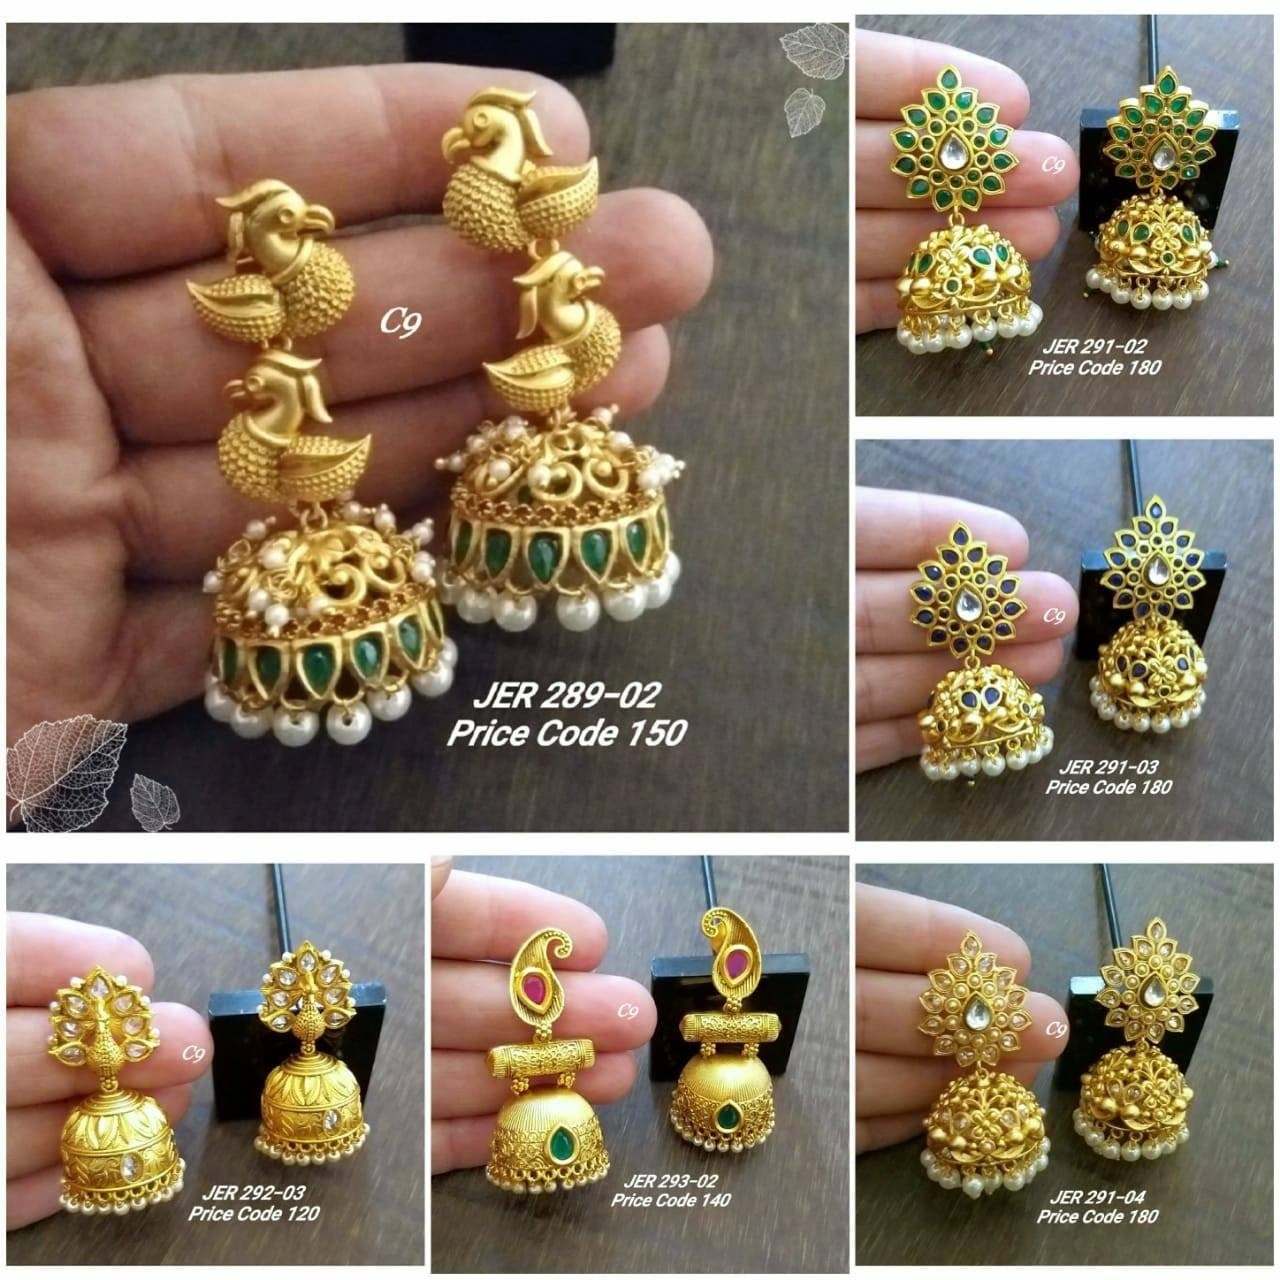 Beautiful one gram gold jumkhis collections. one gram gold earrings online shopping 1 gram gold temple jewellery online shopping one gram gold stone jewellery